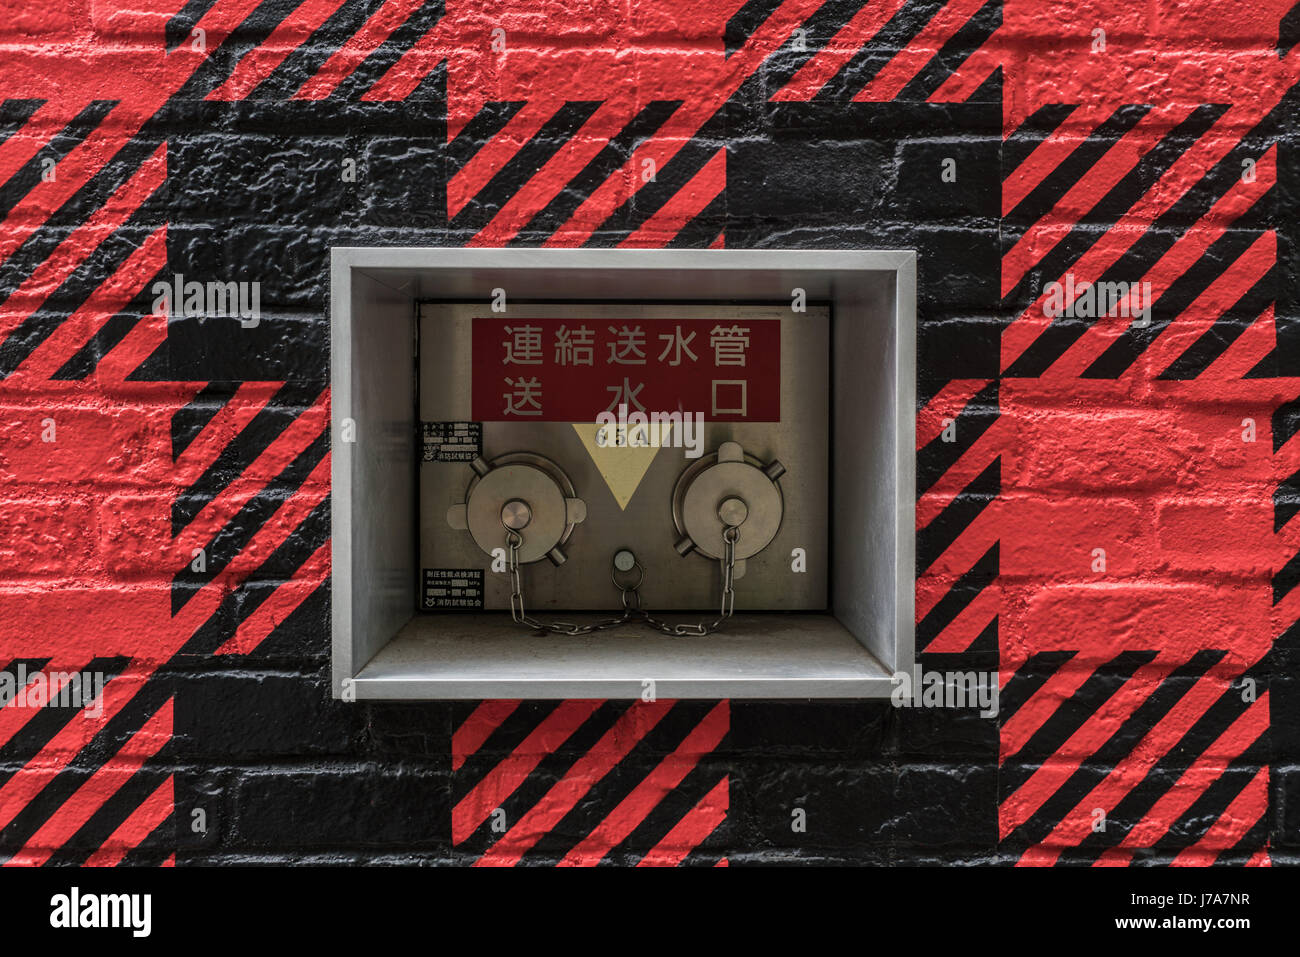 Photo of a resistant key lock box built in a red and black outdoor wall of a building in Harajuku. - Stock Image